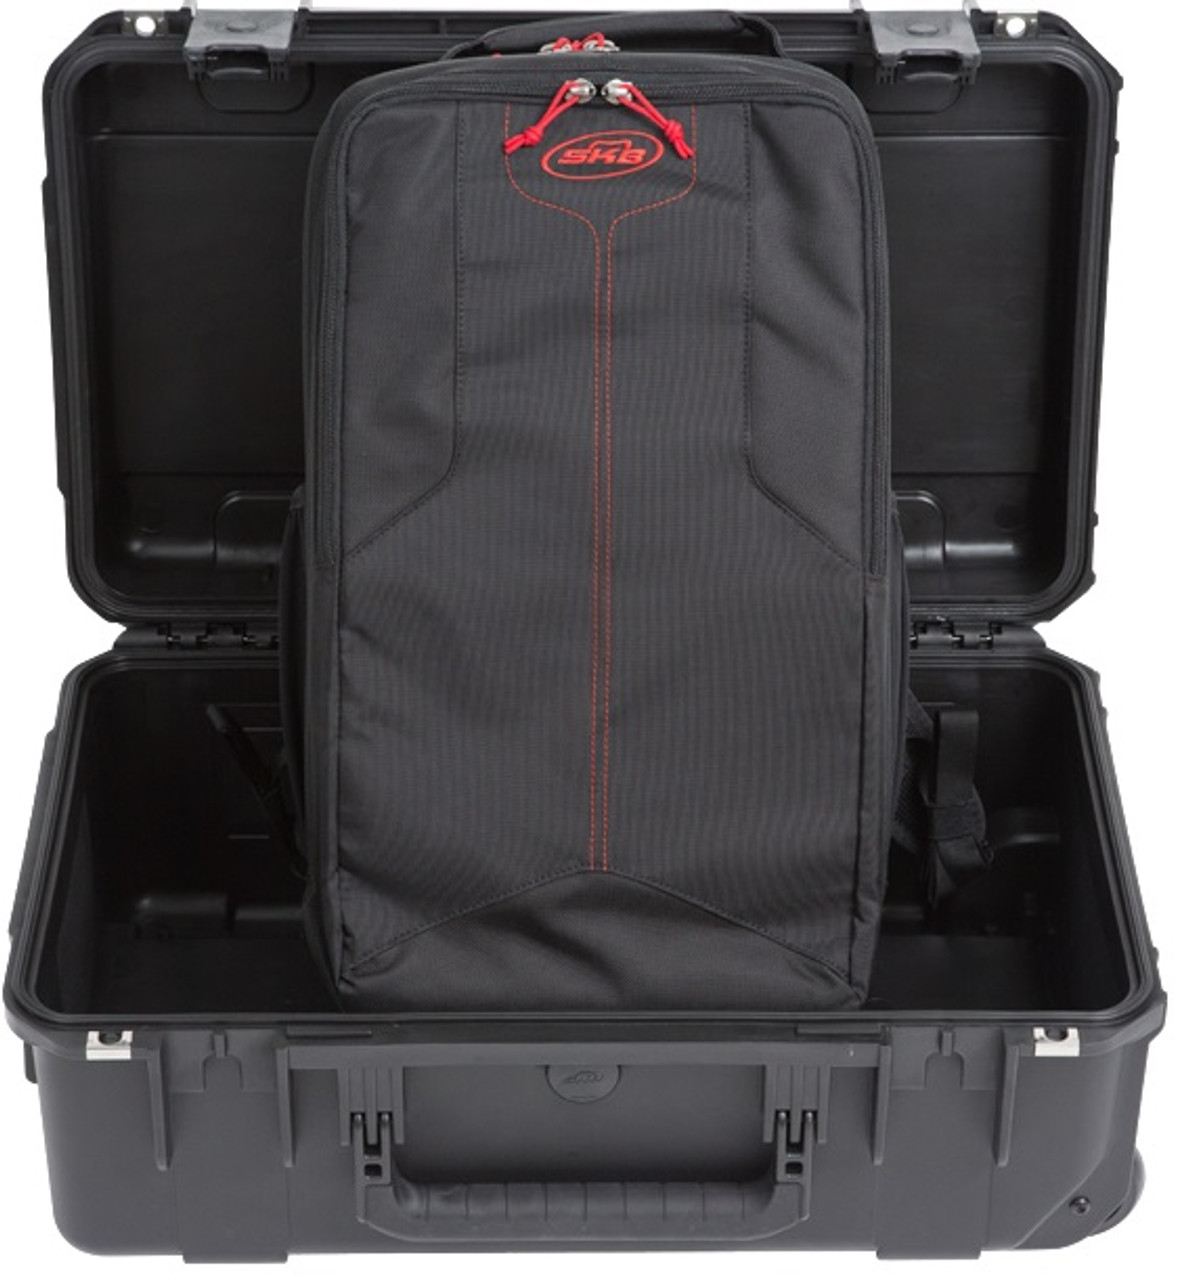 SKB iSeries 2011-7 Case with Think Tank Designed Photo Backpack